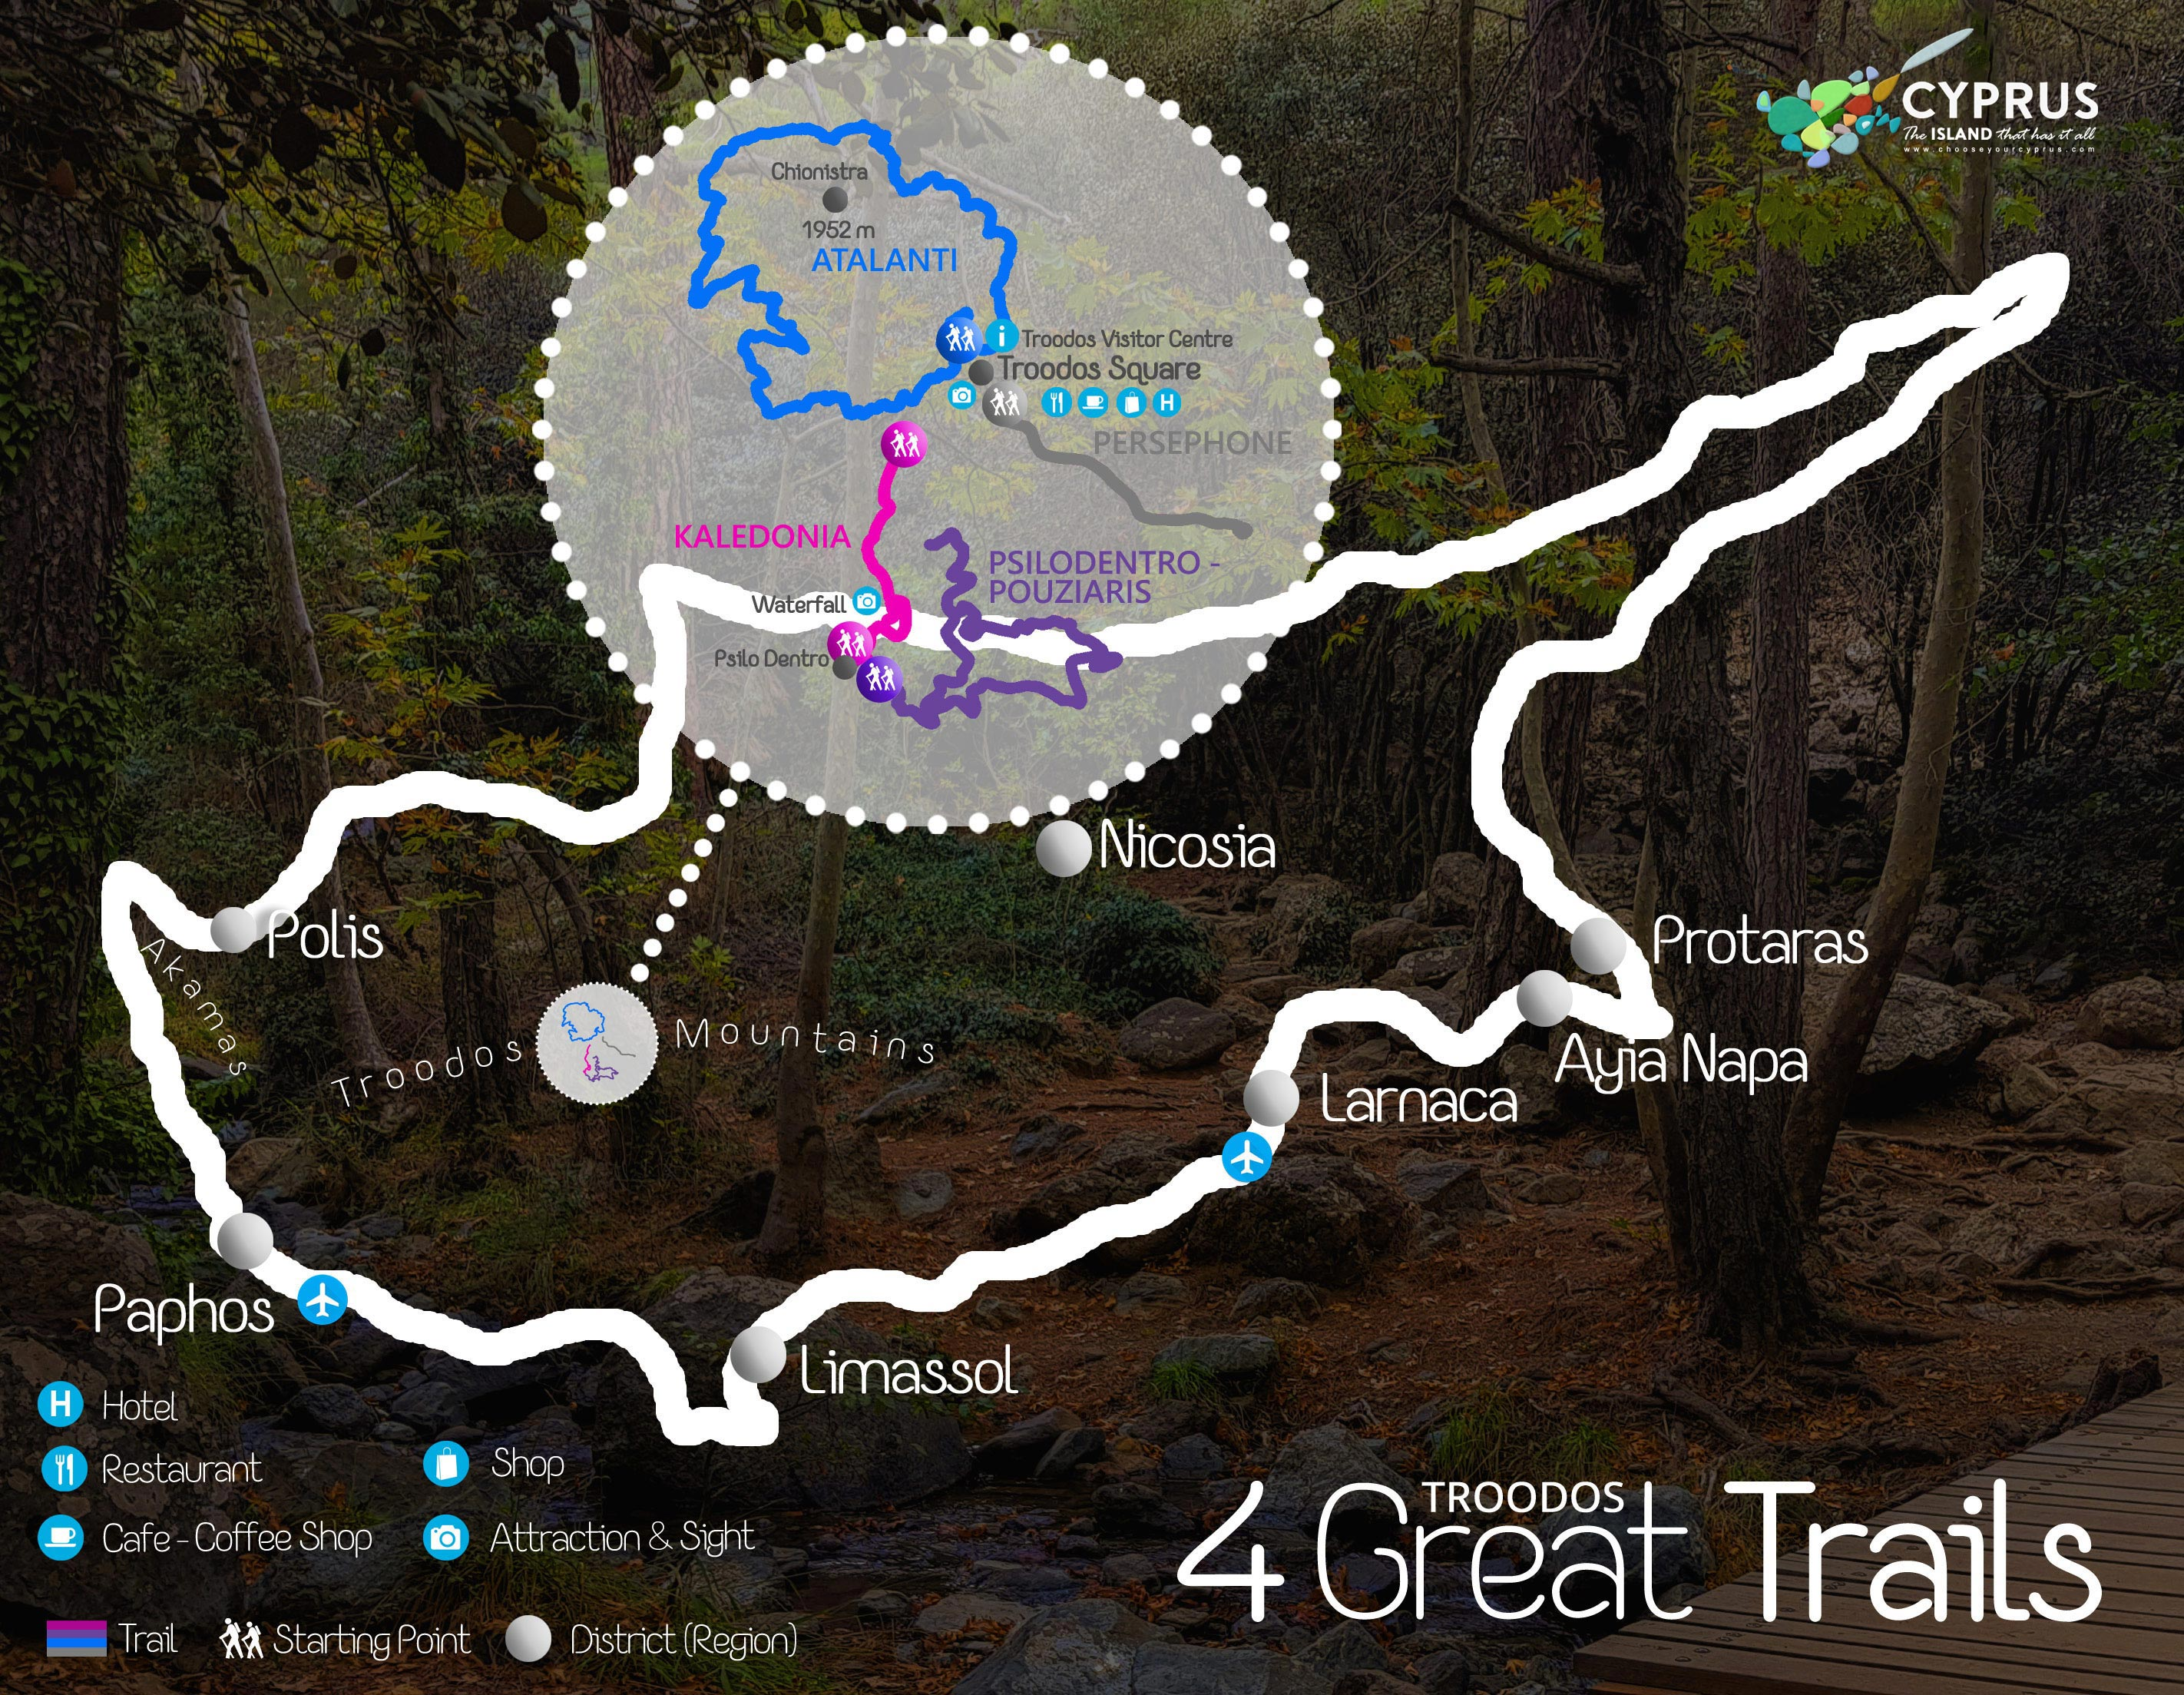 Troodos Trails Karte